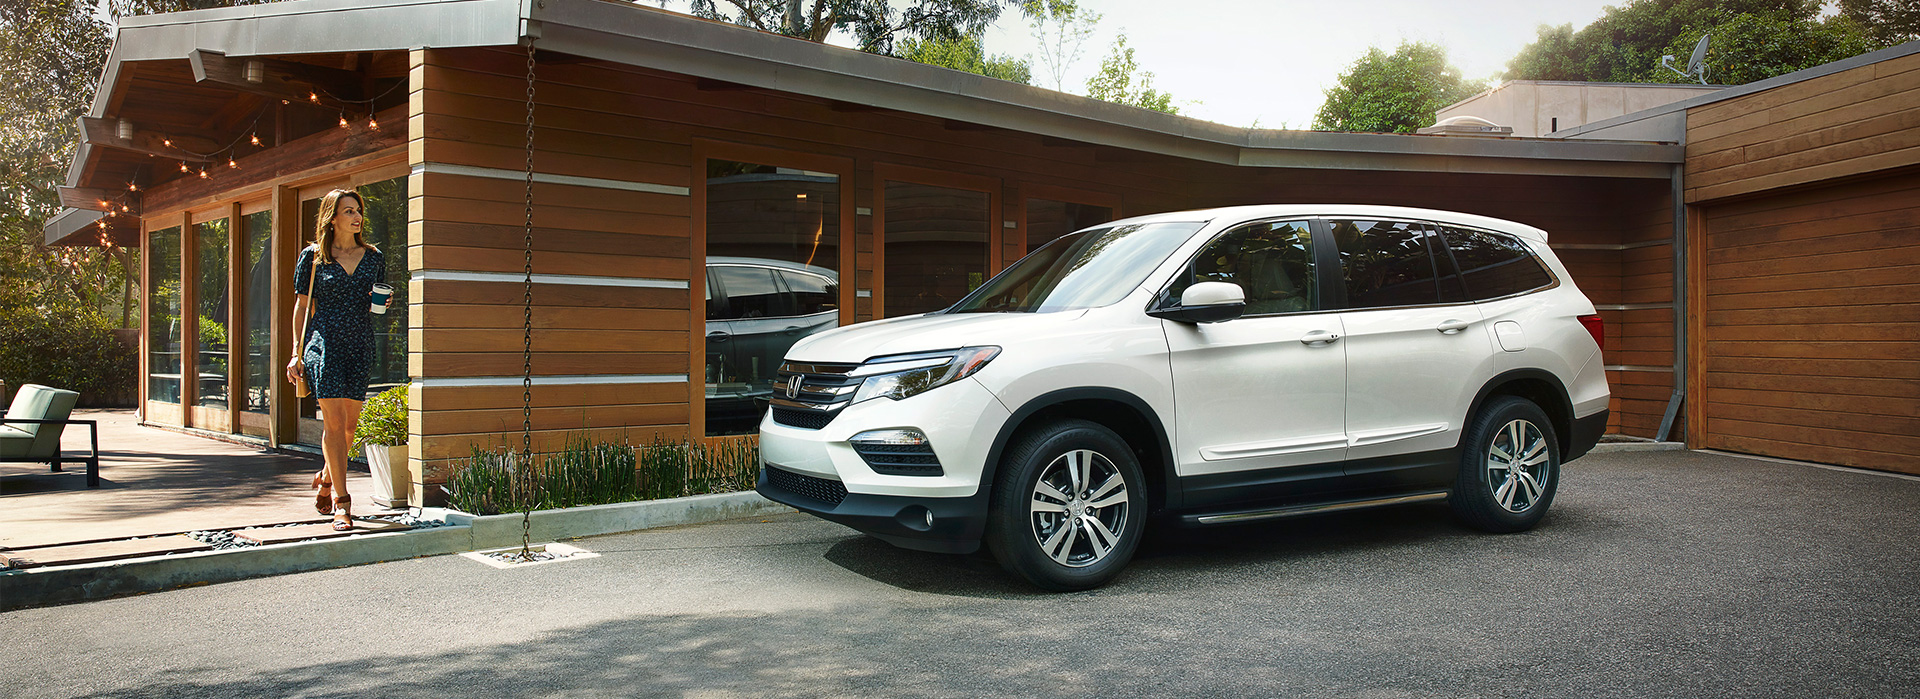 2018 honda pilot shop features exterior